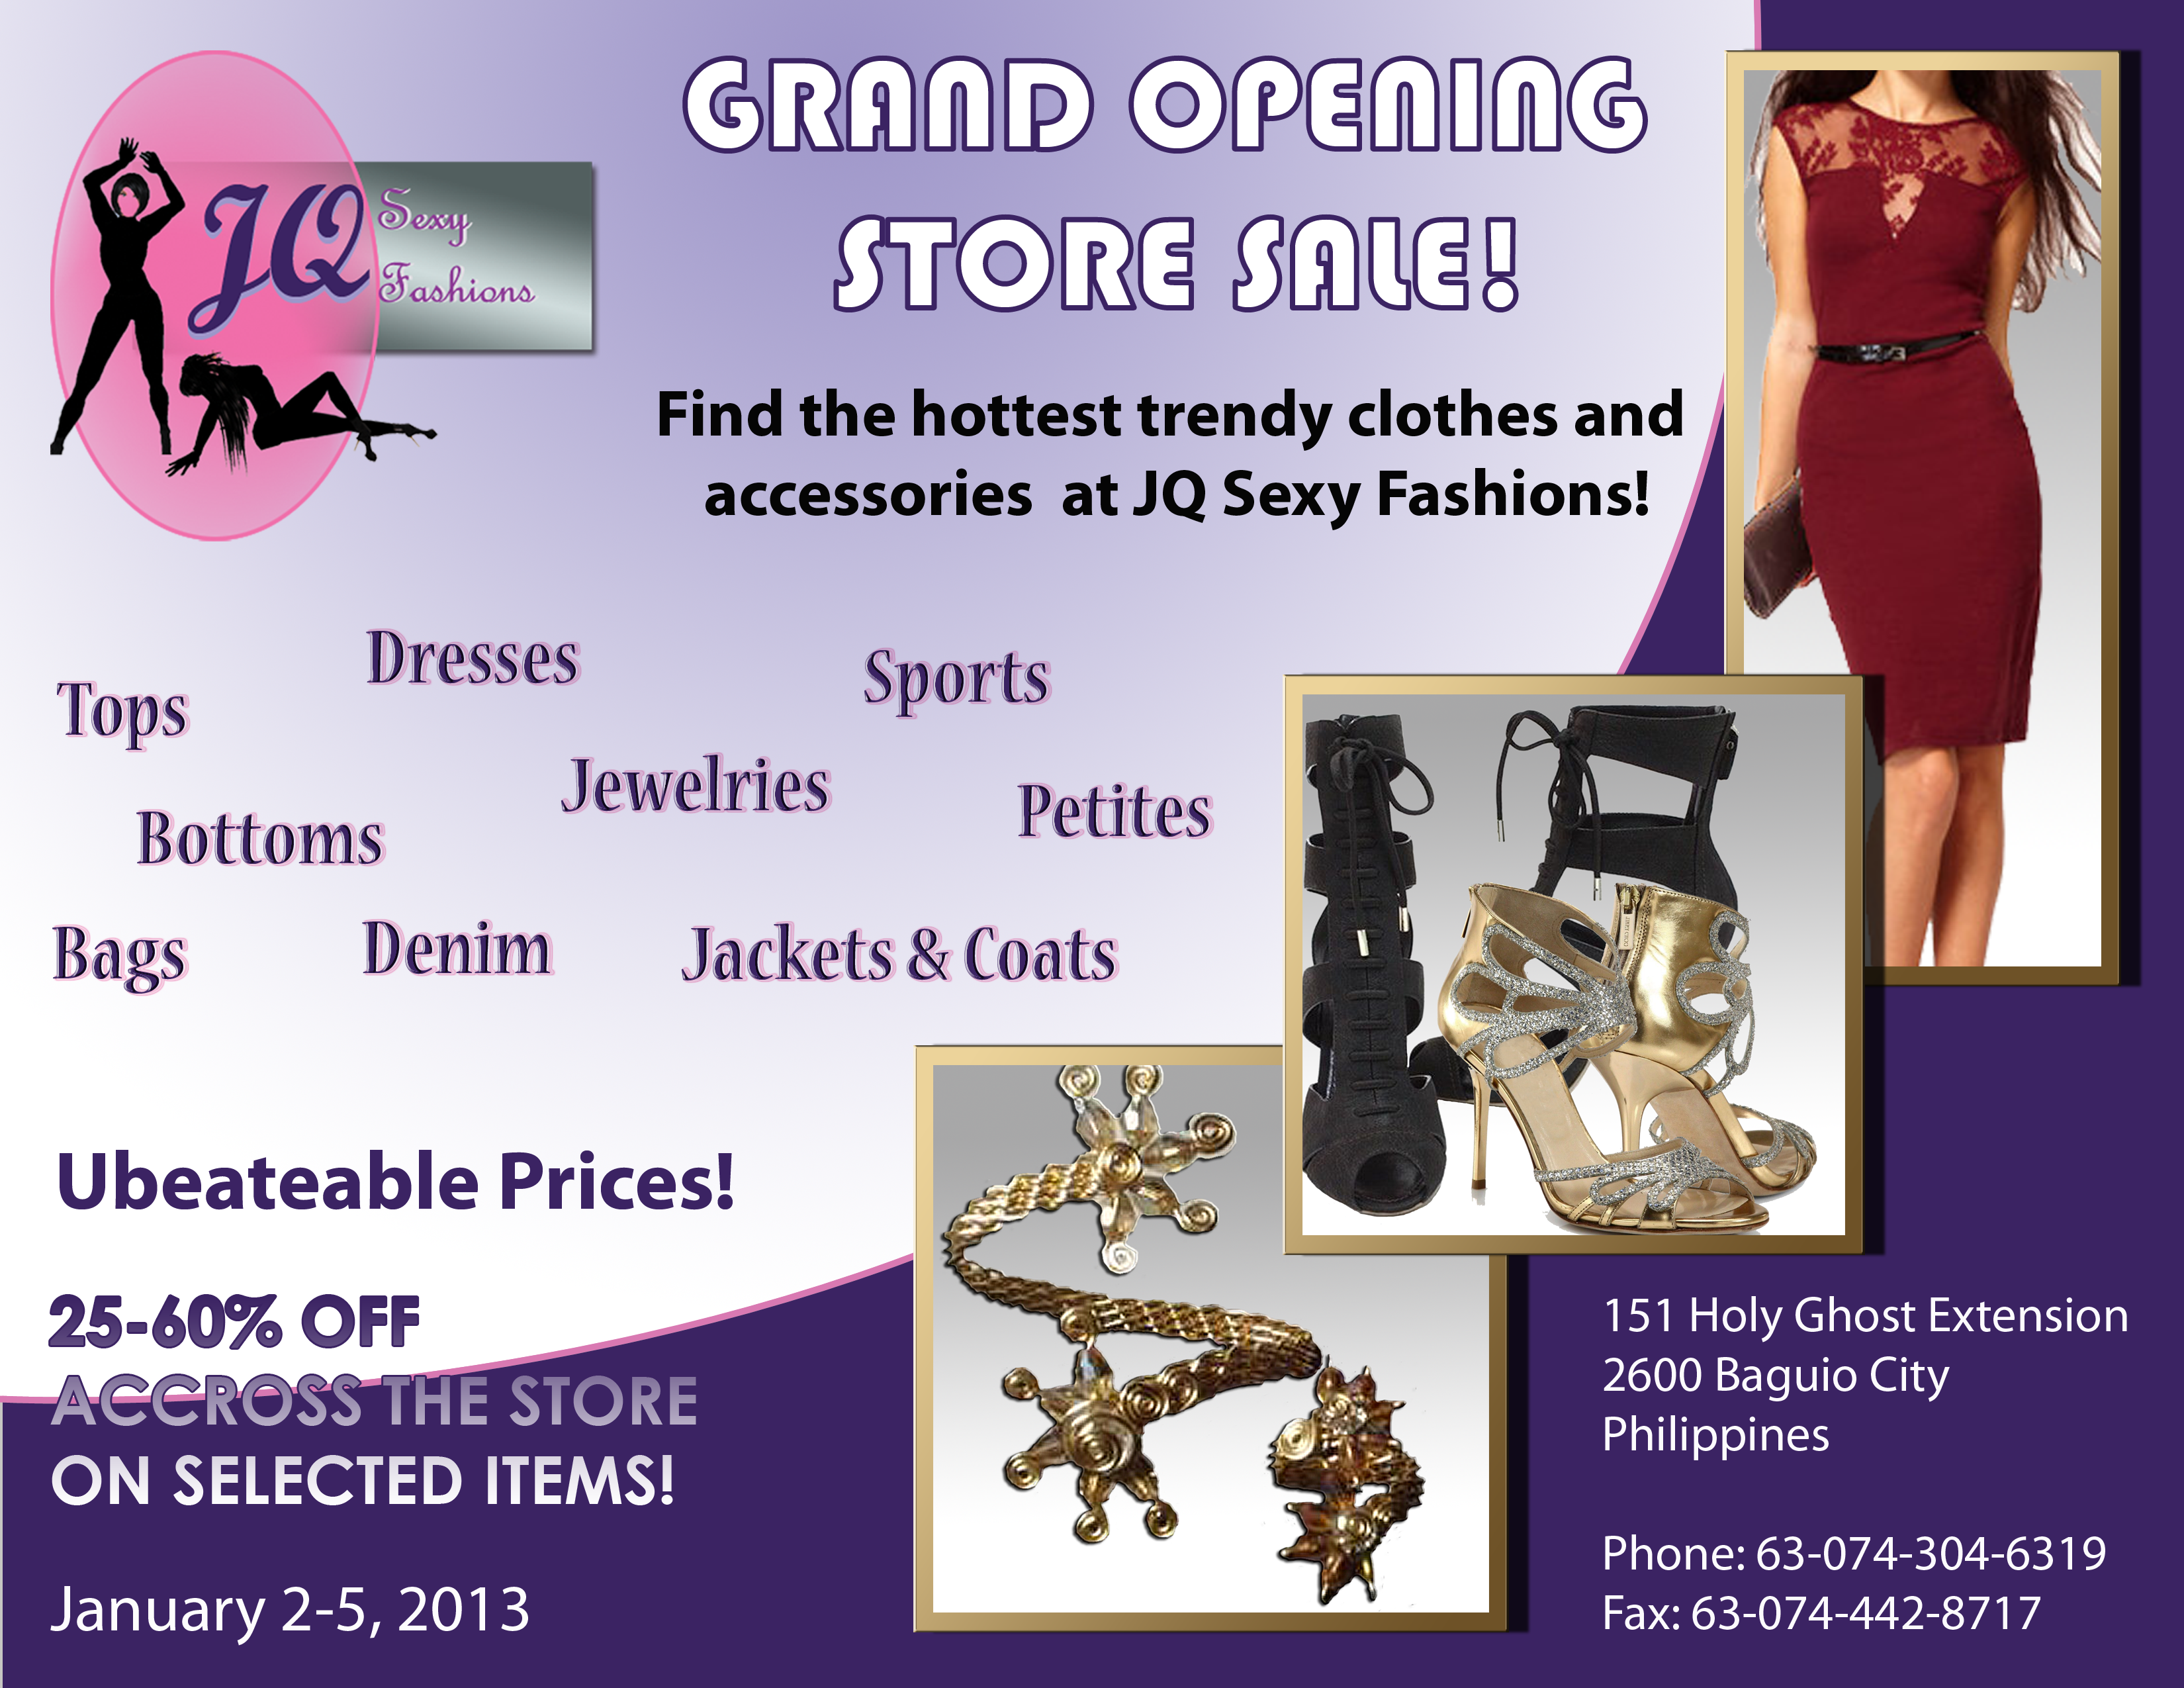 grand opening advertising flyer for clothing retailer impact advertising artwork purple background misc text and embedded photos of clothing items